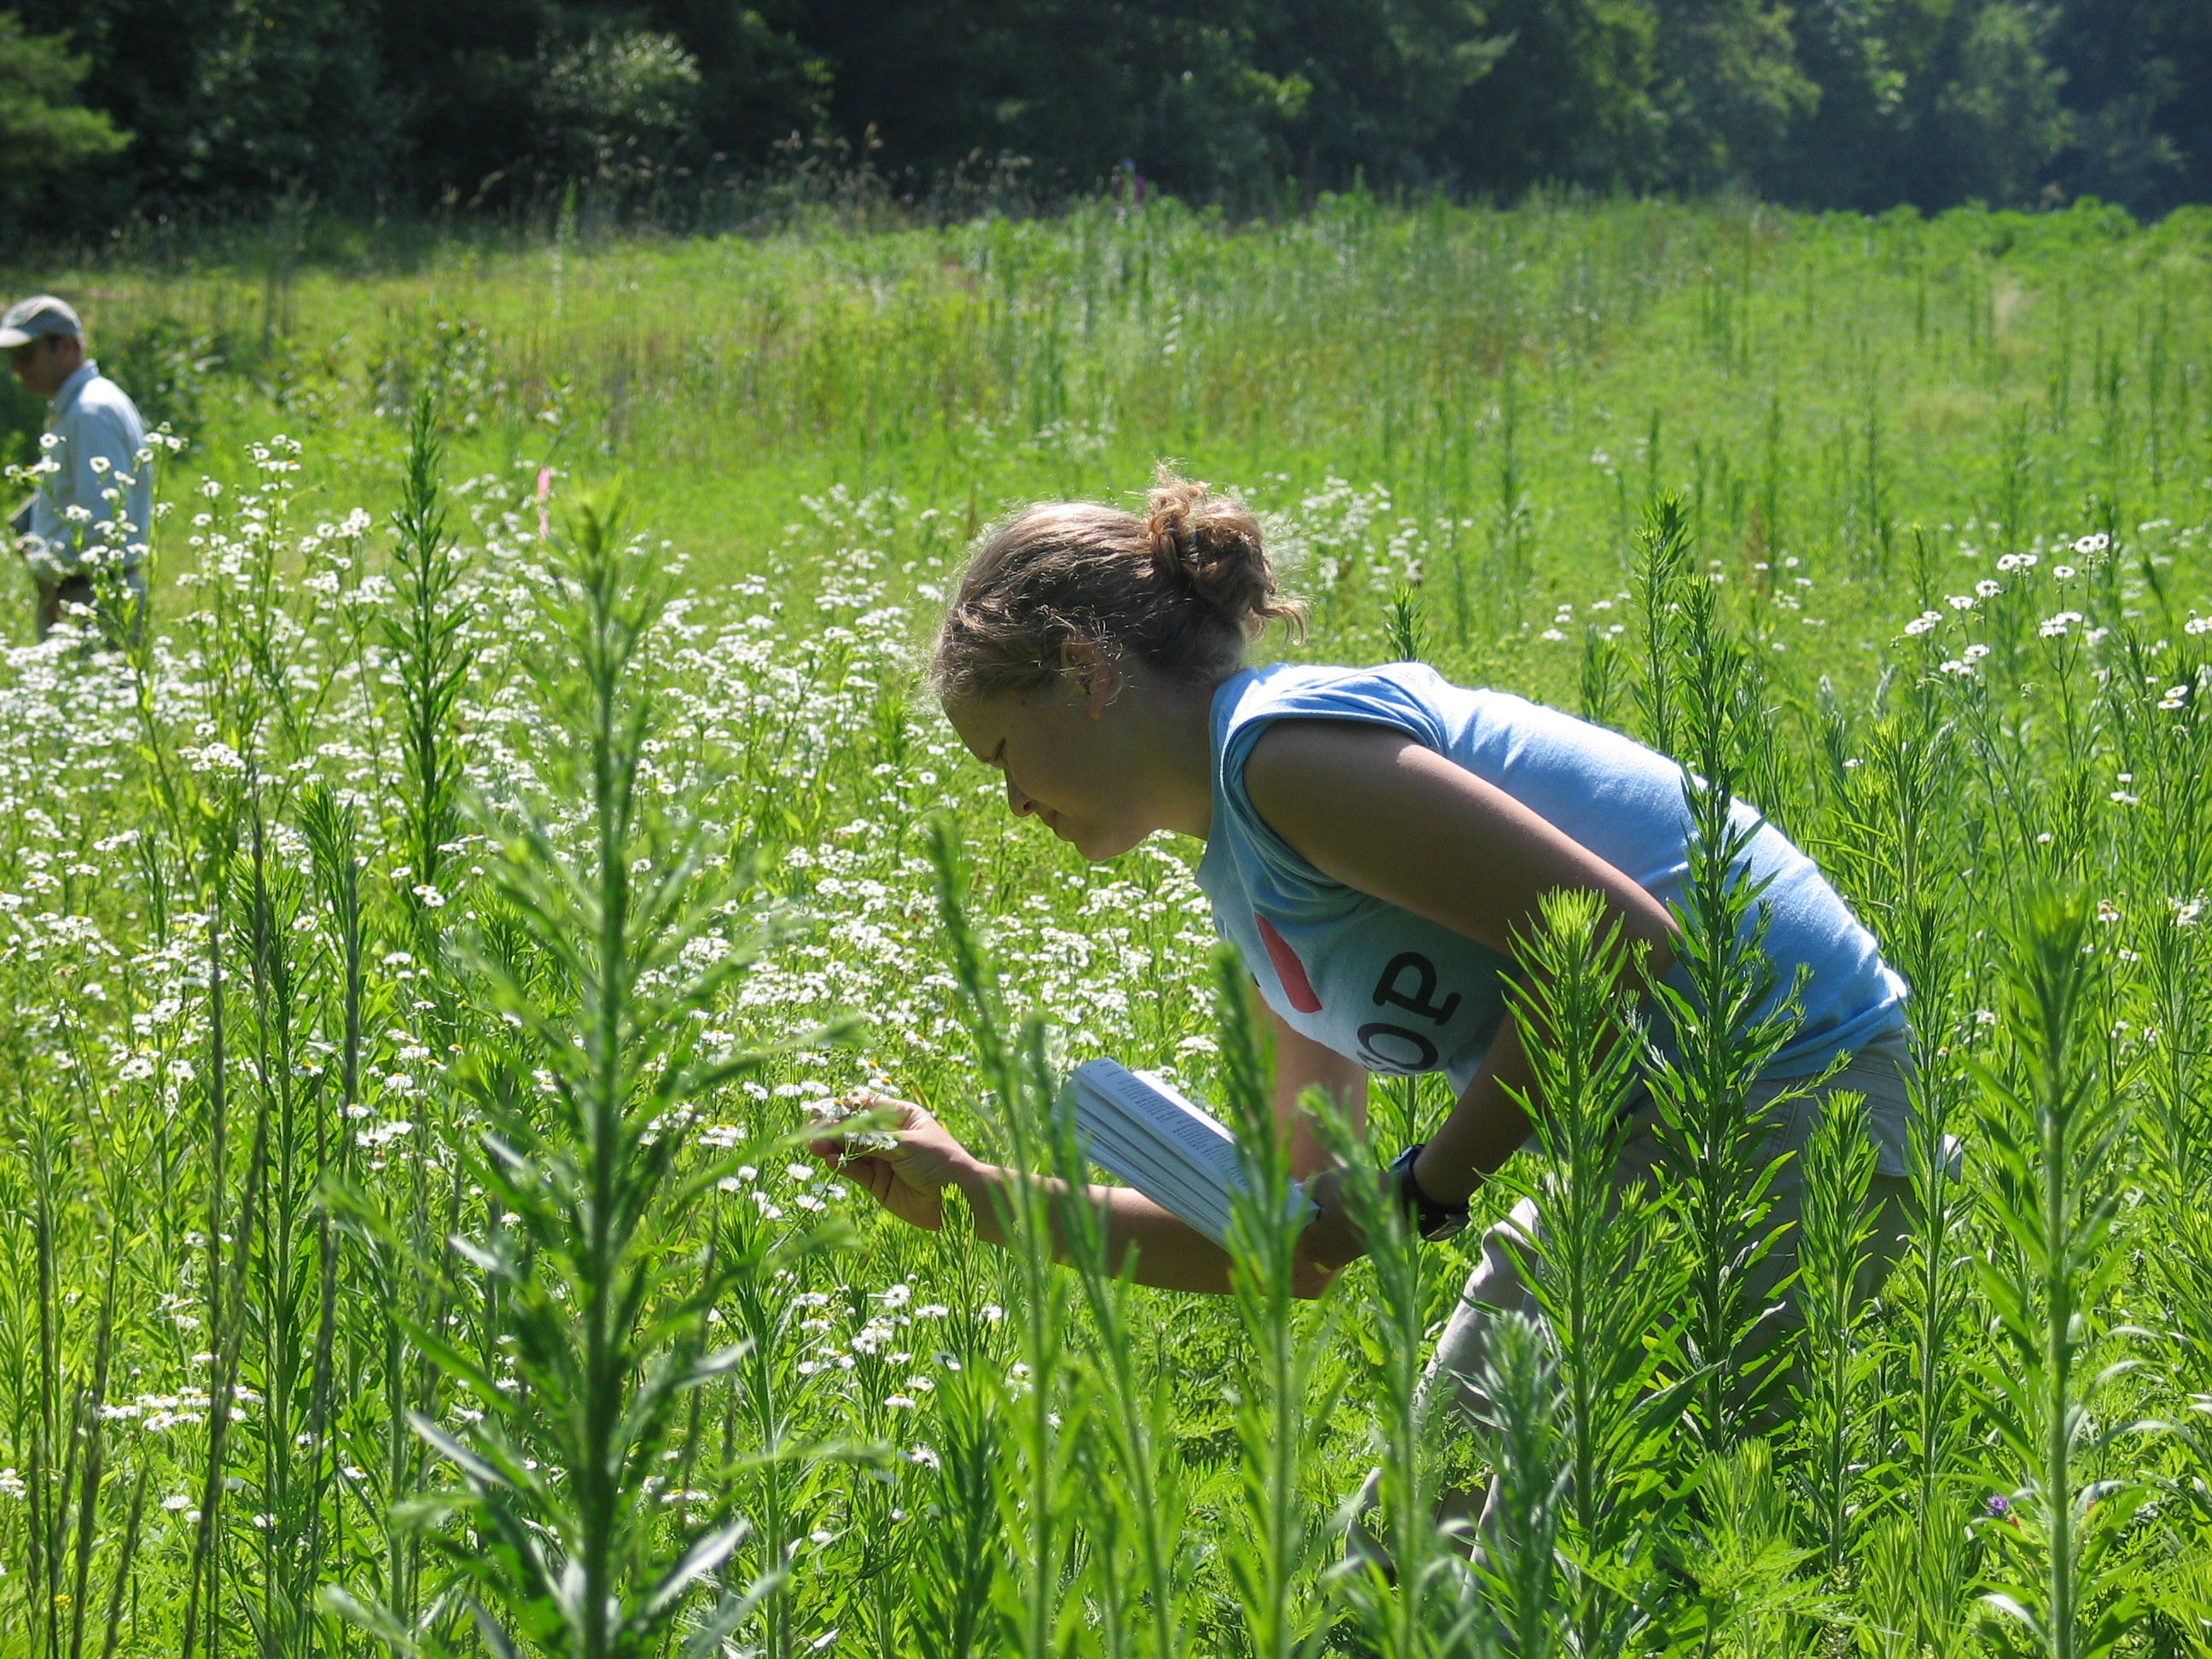 A woman examines flowers in a field, recording her observations